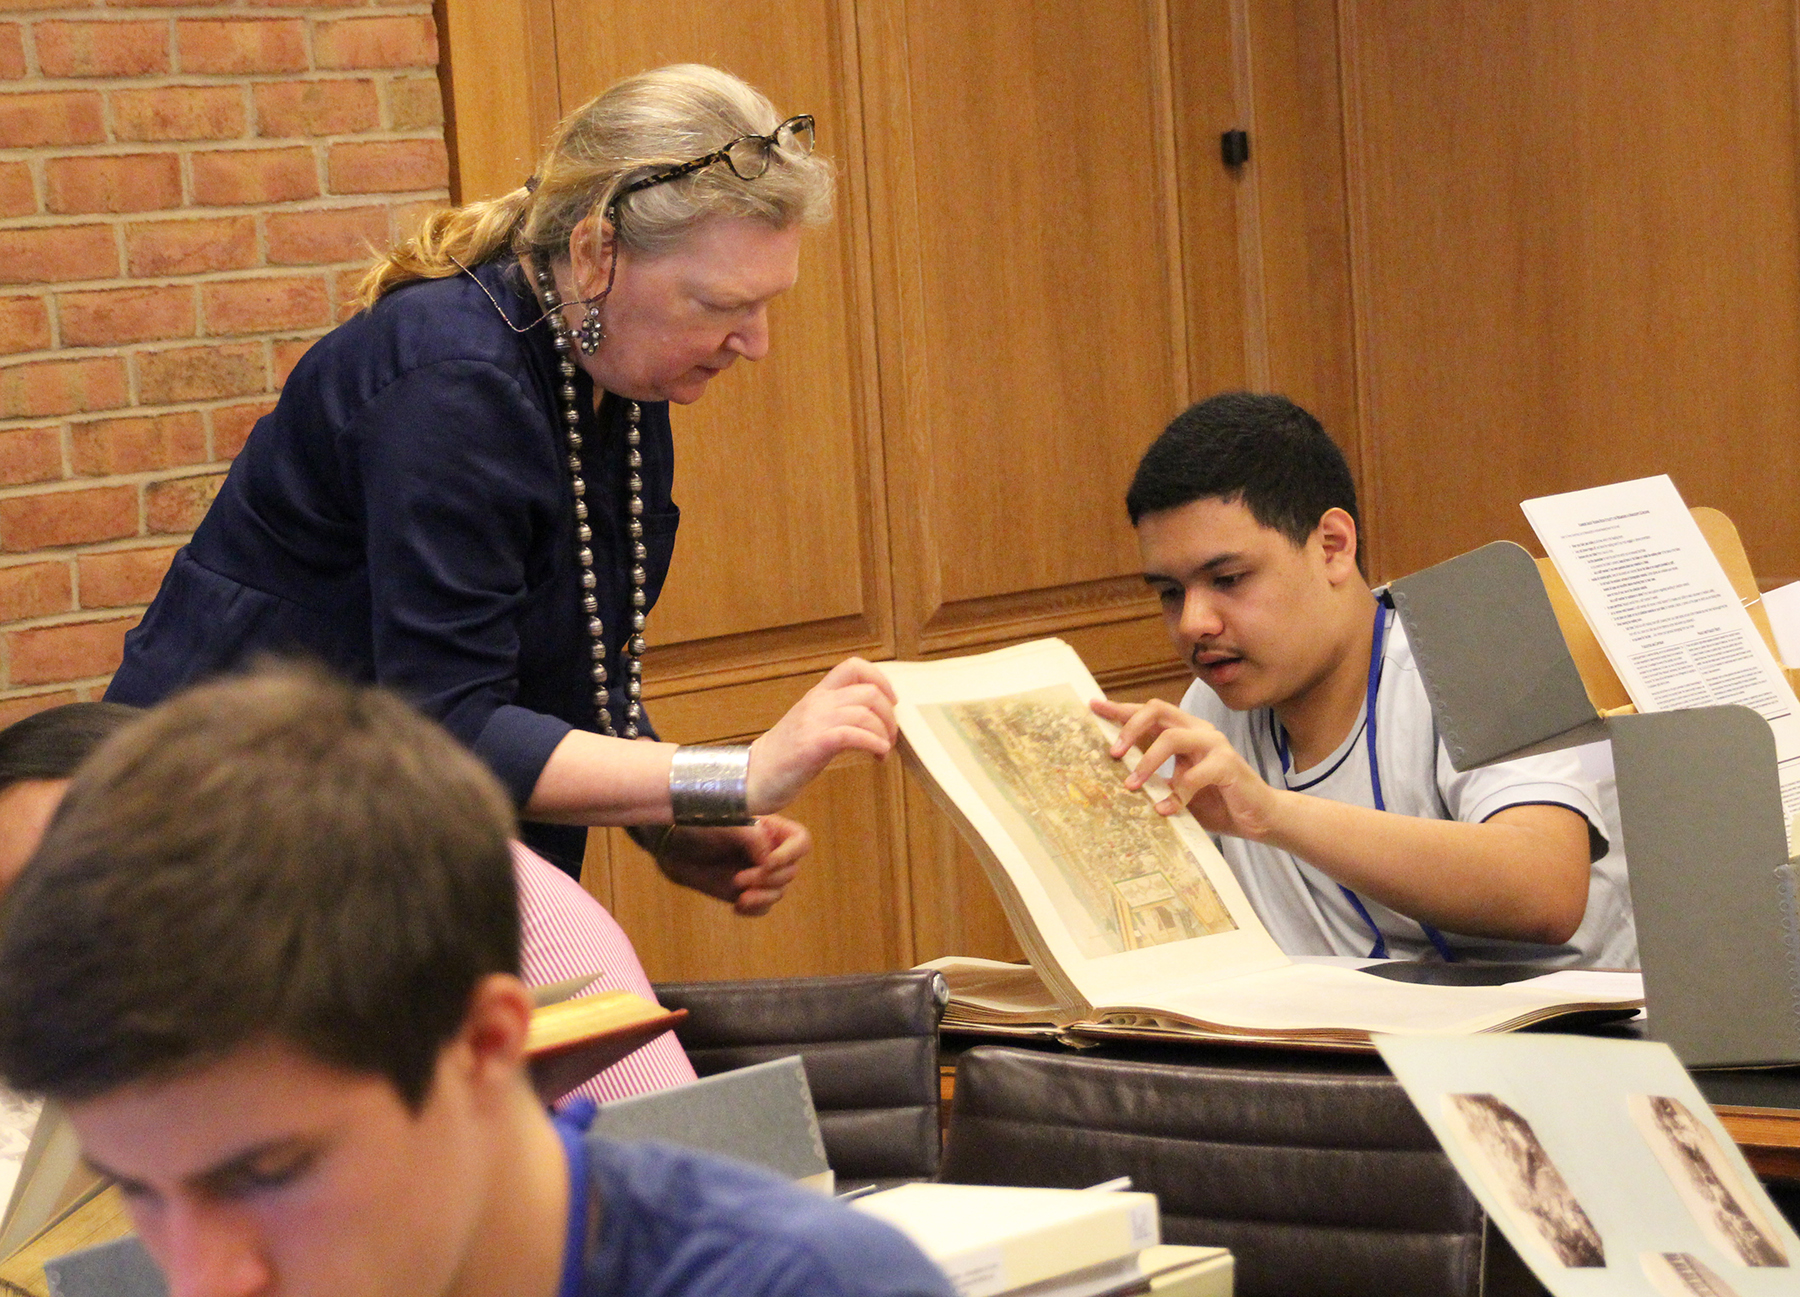 Librarian showing a collection item to a student